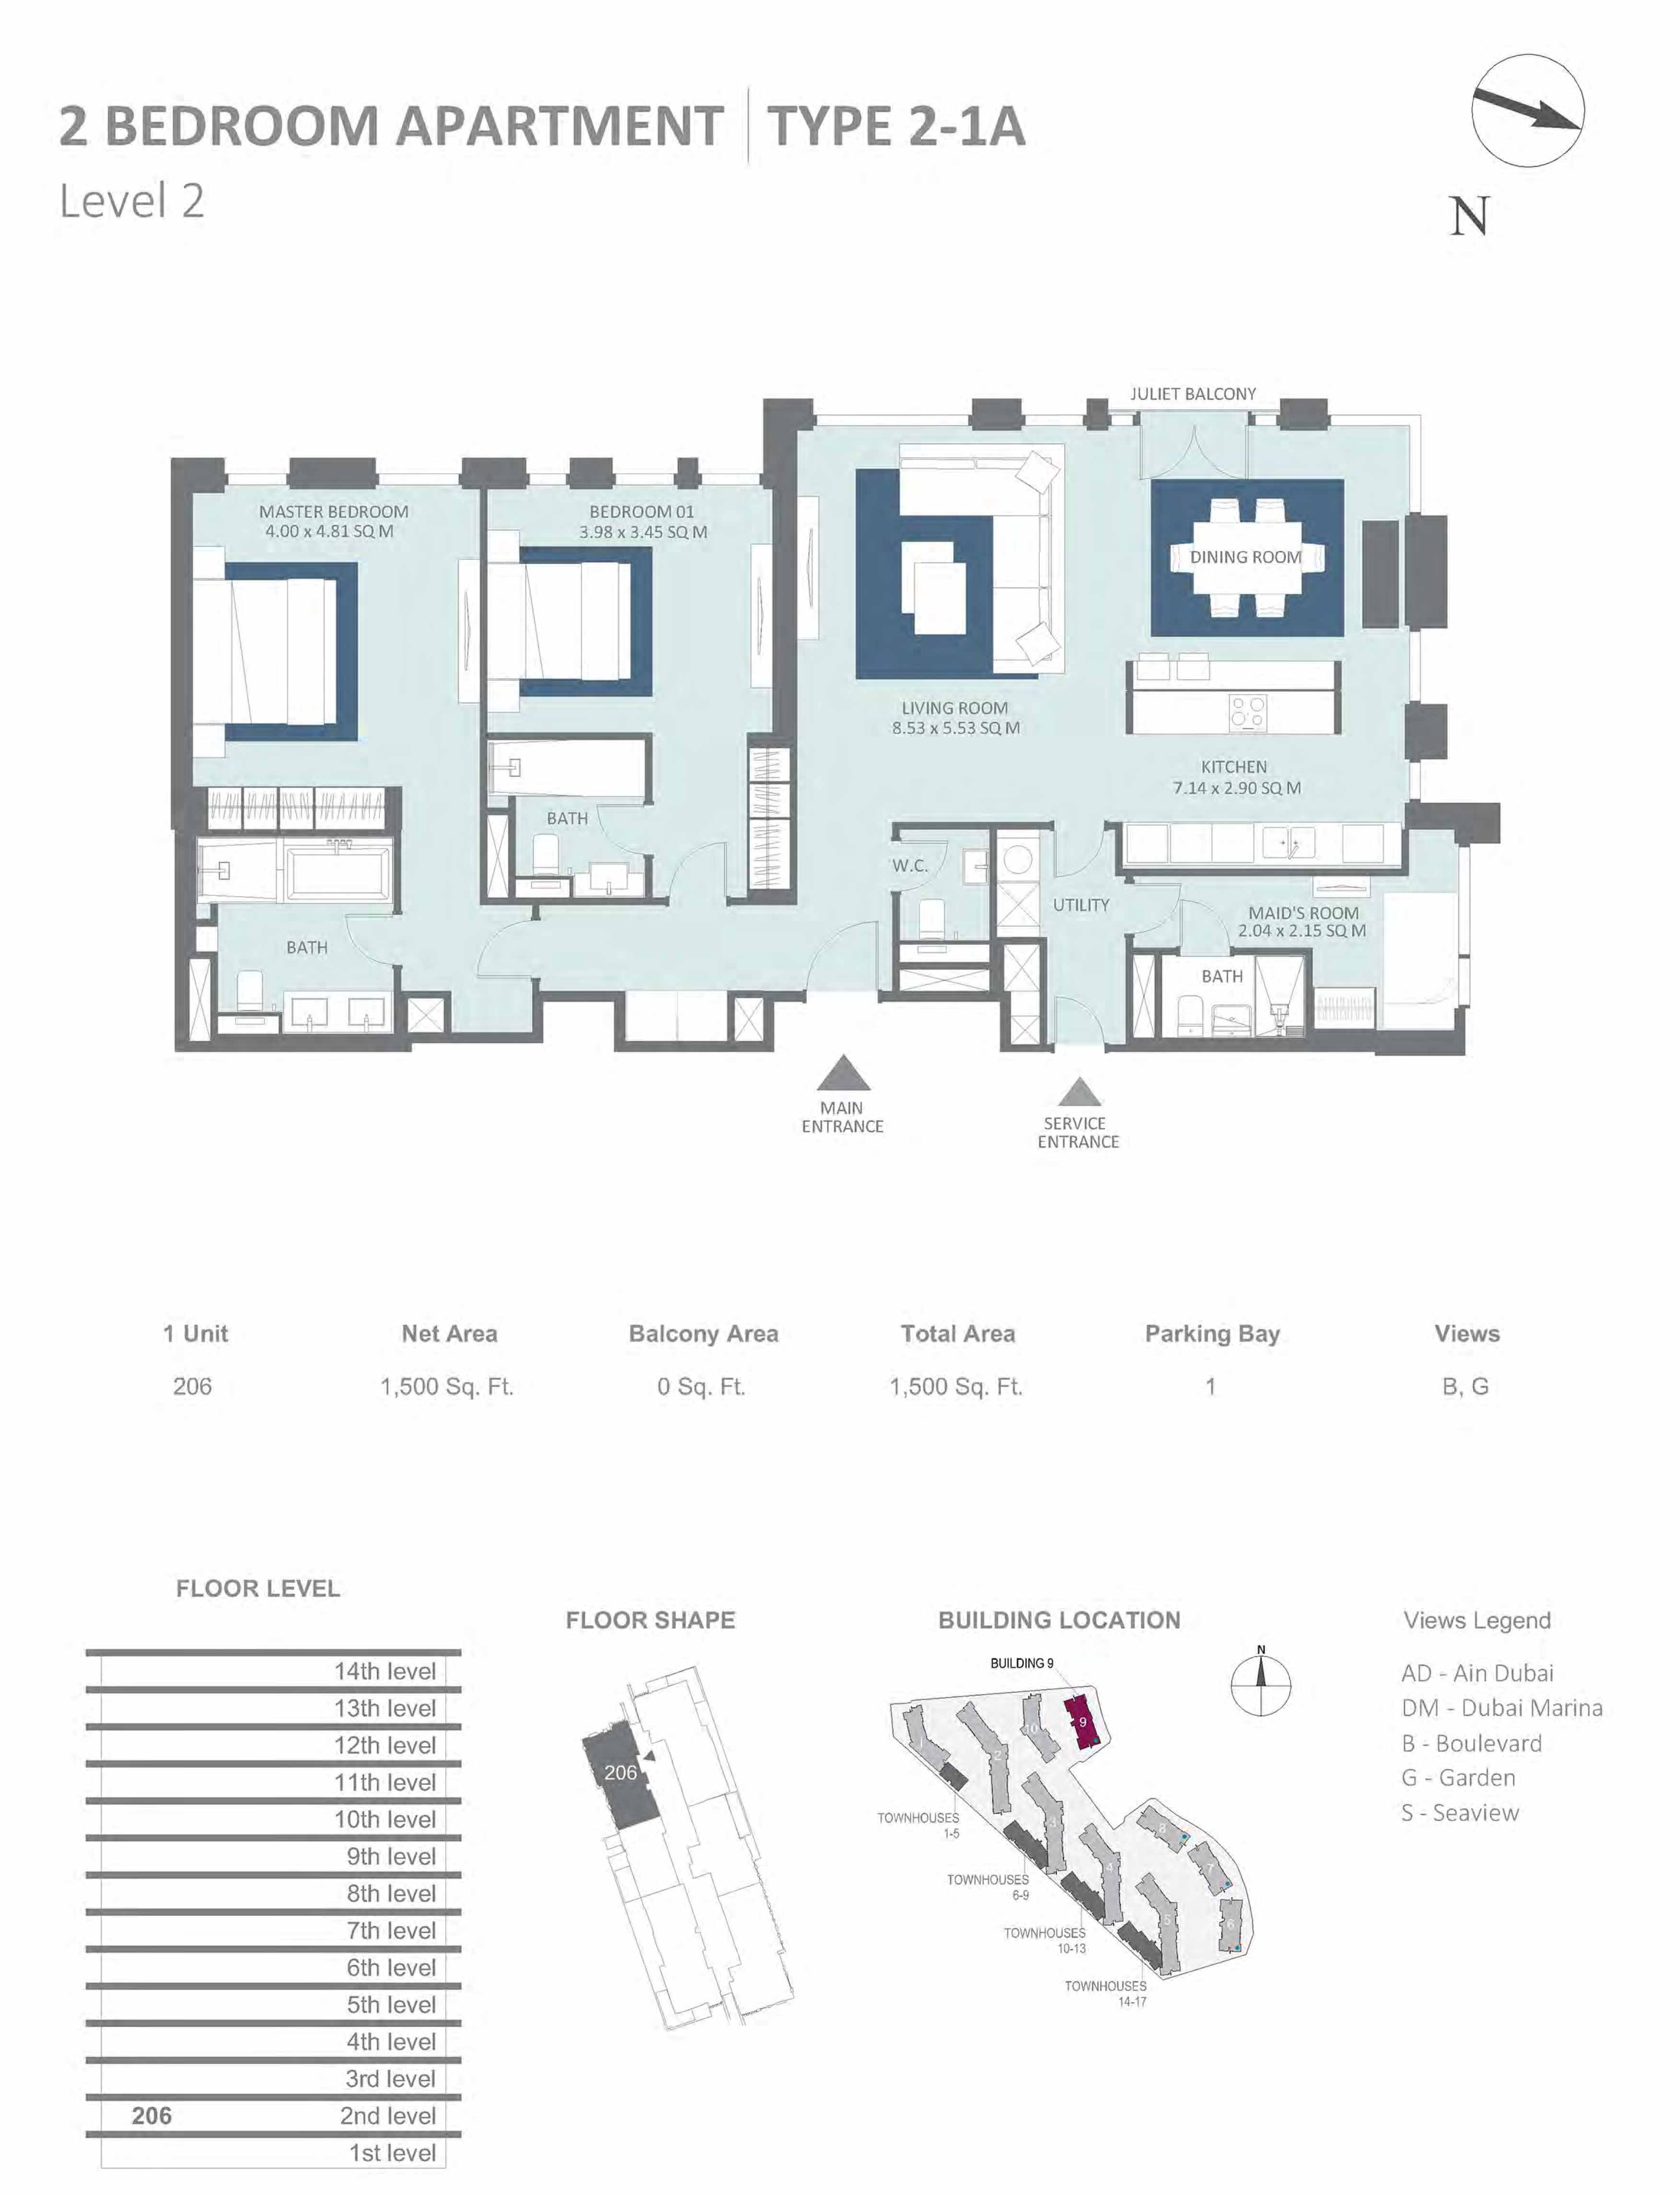 Building 9 - 2 Bedroom Type 2-1A, Level 2 Size 1500  sq. ft.